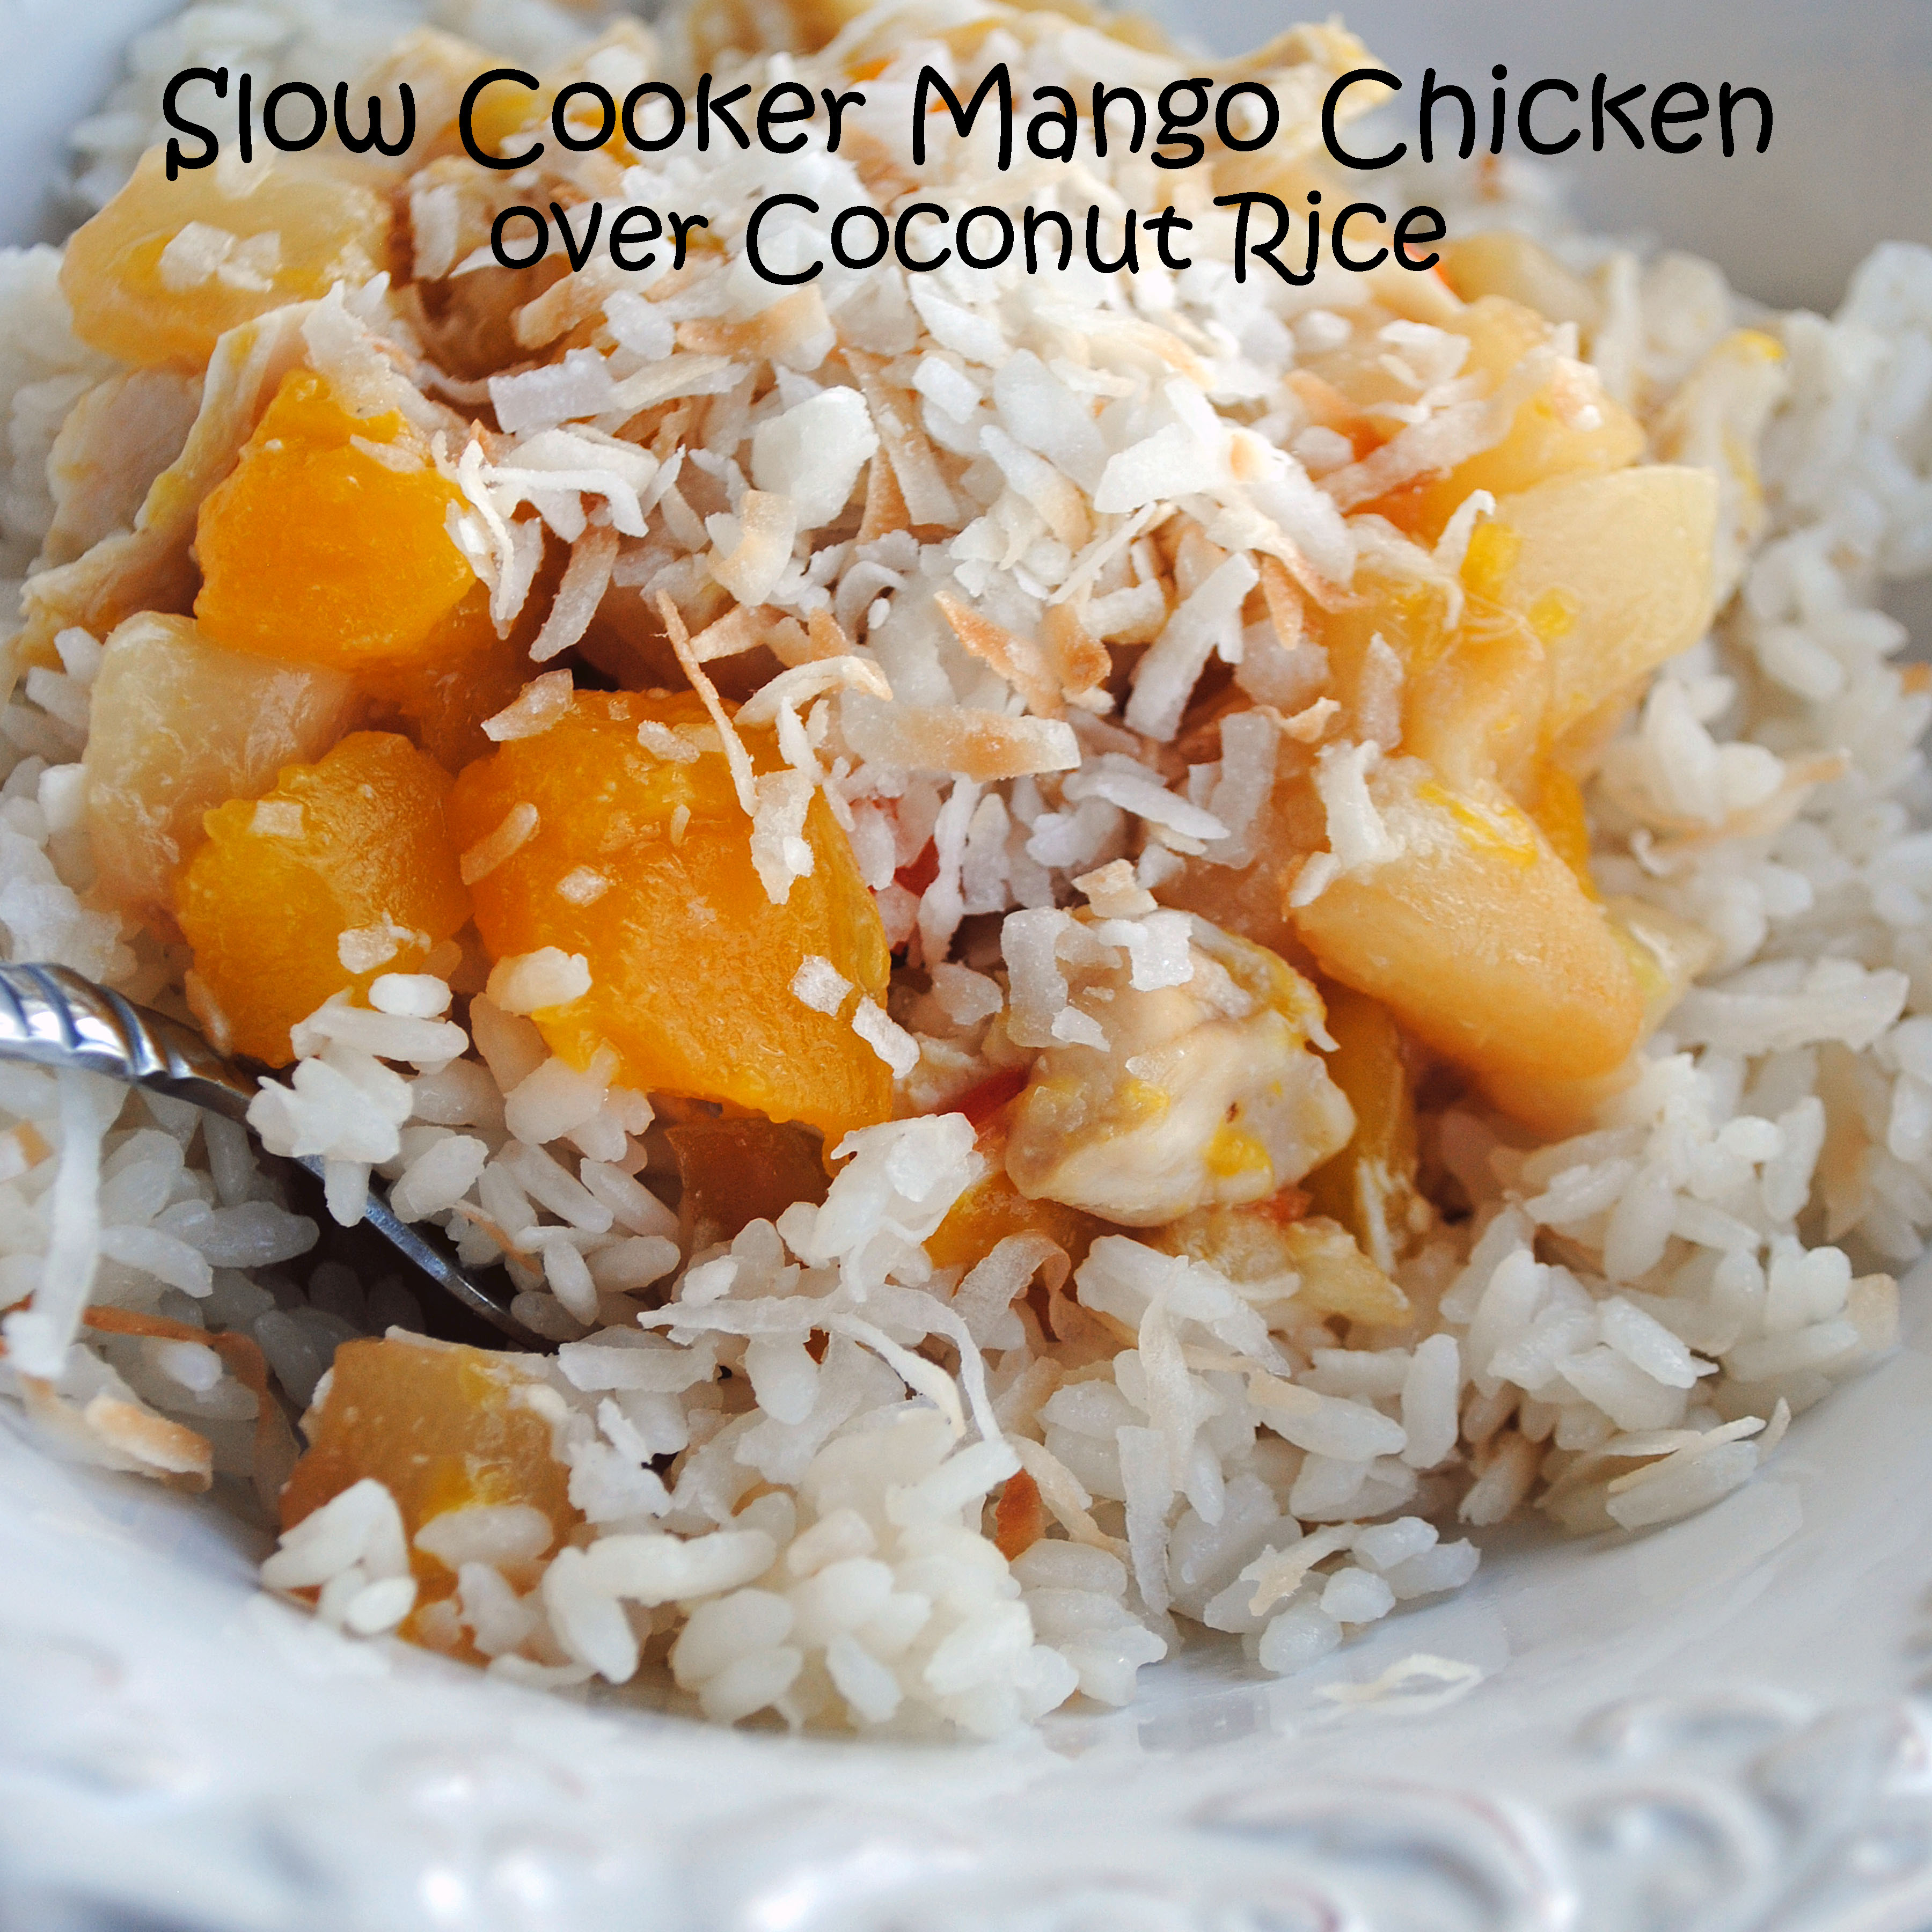 Mango Chicken over Coconut Rice